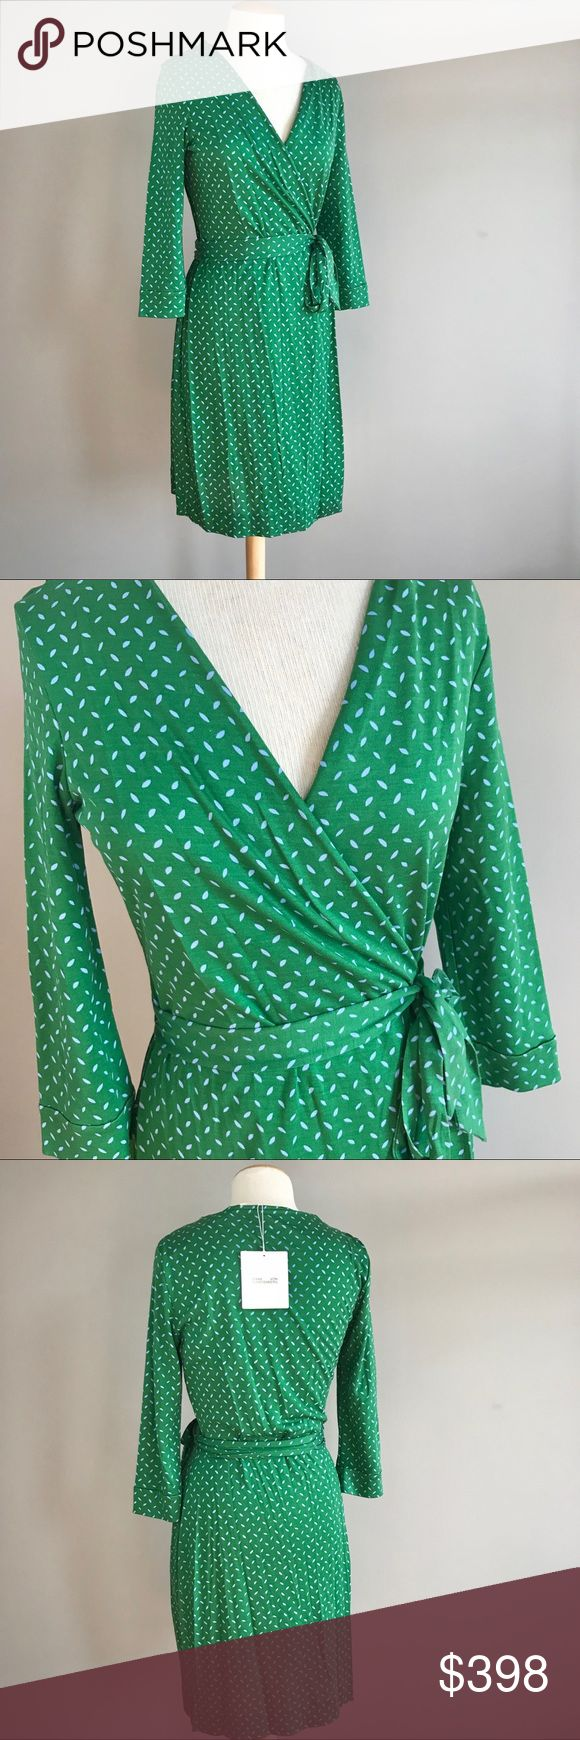 """Diane von Furstenberg Bromley green dot wrap dress Diane Von Furstenberg DVF Bromley Dot green wrap dress  A plunging neckline and three-quarter sleeves define the bodice, which is separated from the A-line skirt by a sash closure at the natural waist. True wrap style Unlined 100% silk matte jersey  Brand new with tags.   Approximate flat lay measurements: Length: 38"""" Bust across pit to pit: 19"""" AR4975 Diane Von Furstenberg Dresses"""